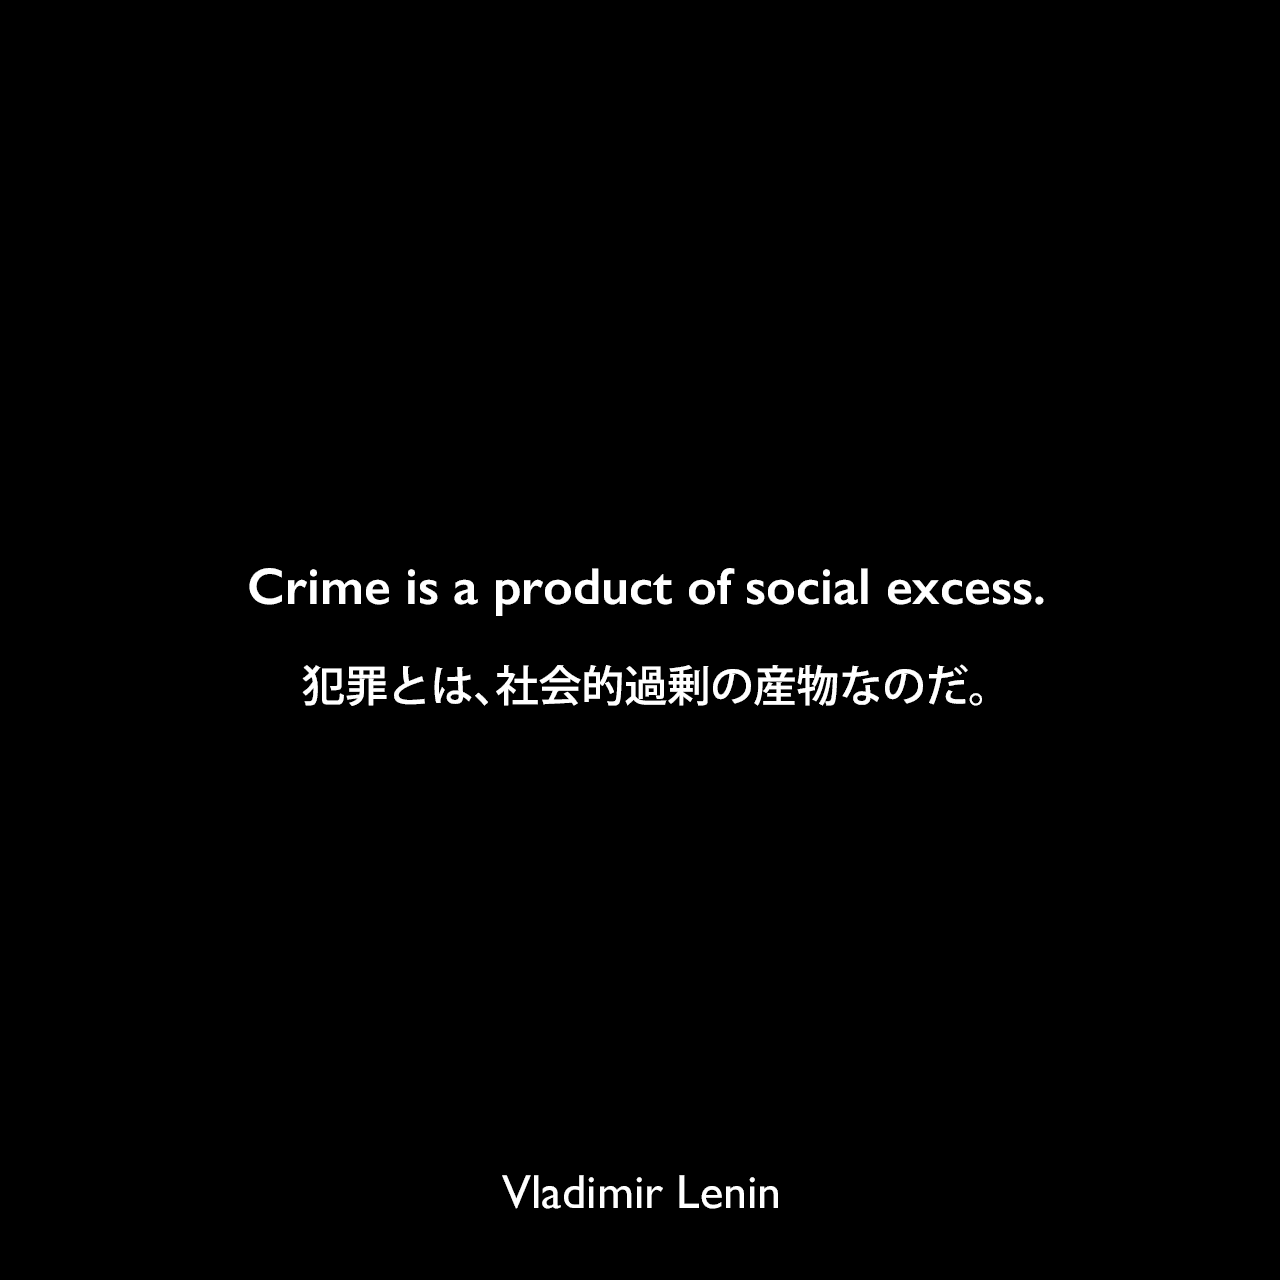 Crime is a product of social excess.犯罪とは、社会的過剰の産物なのだ。Vladimir Lenin